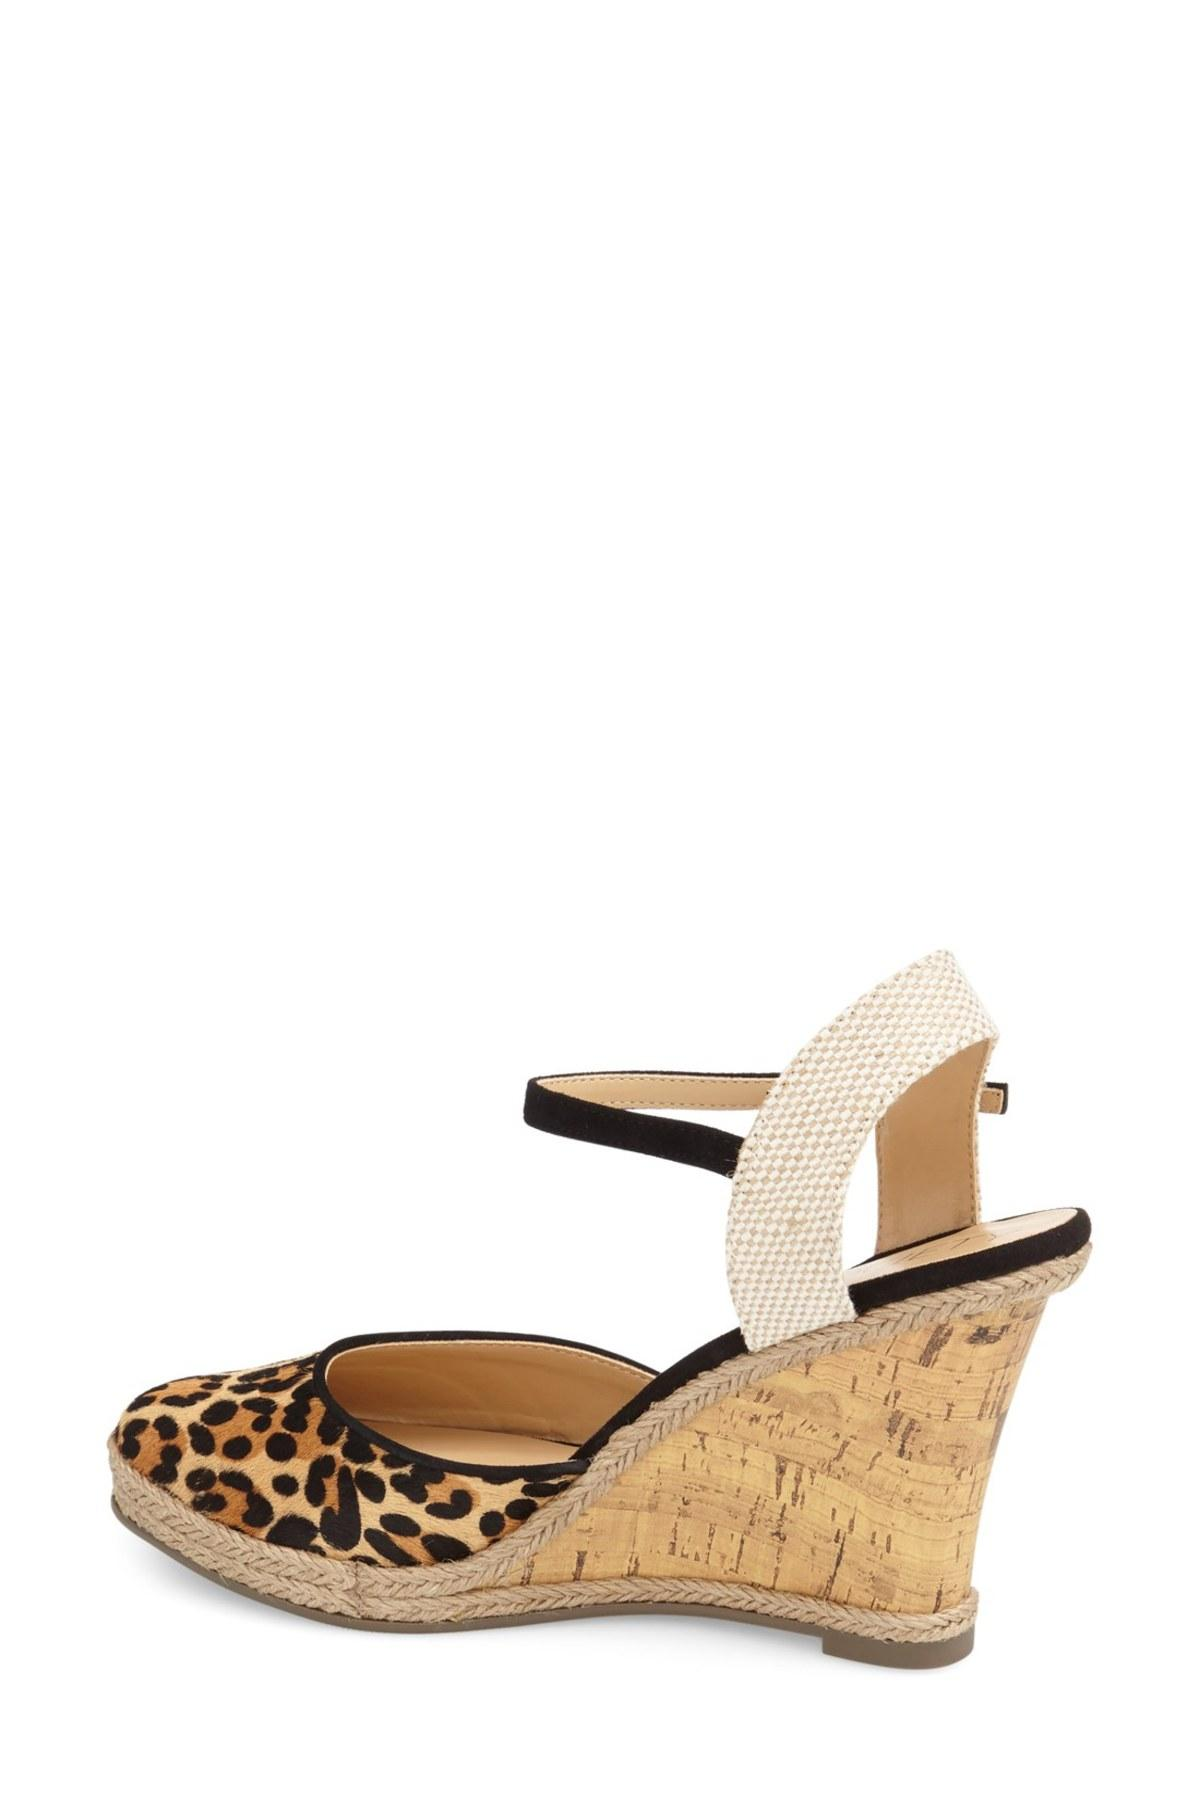 683bb674f039 Sole Society - Multicolor  lucy  Wedge Sandal (women) - Lyst. View  fullscreen